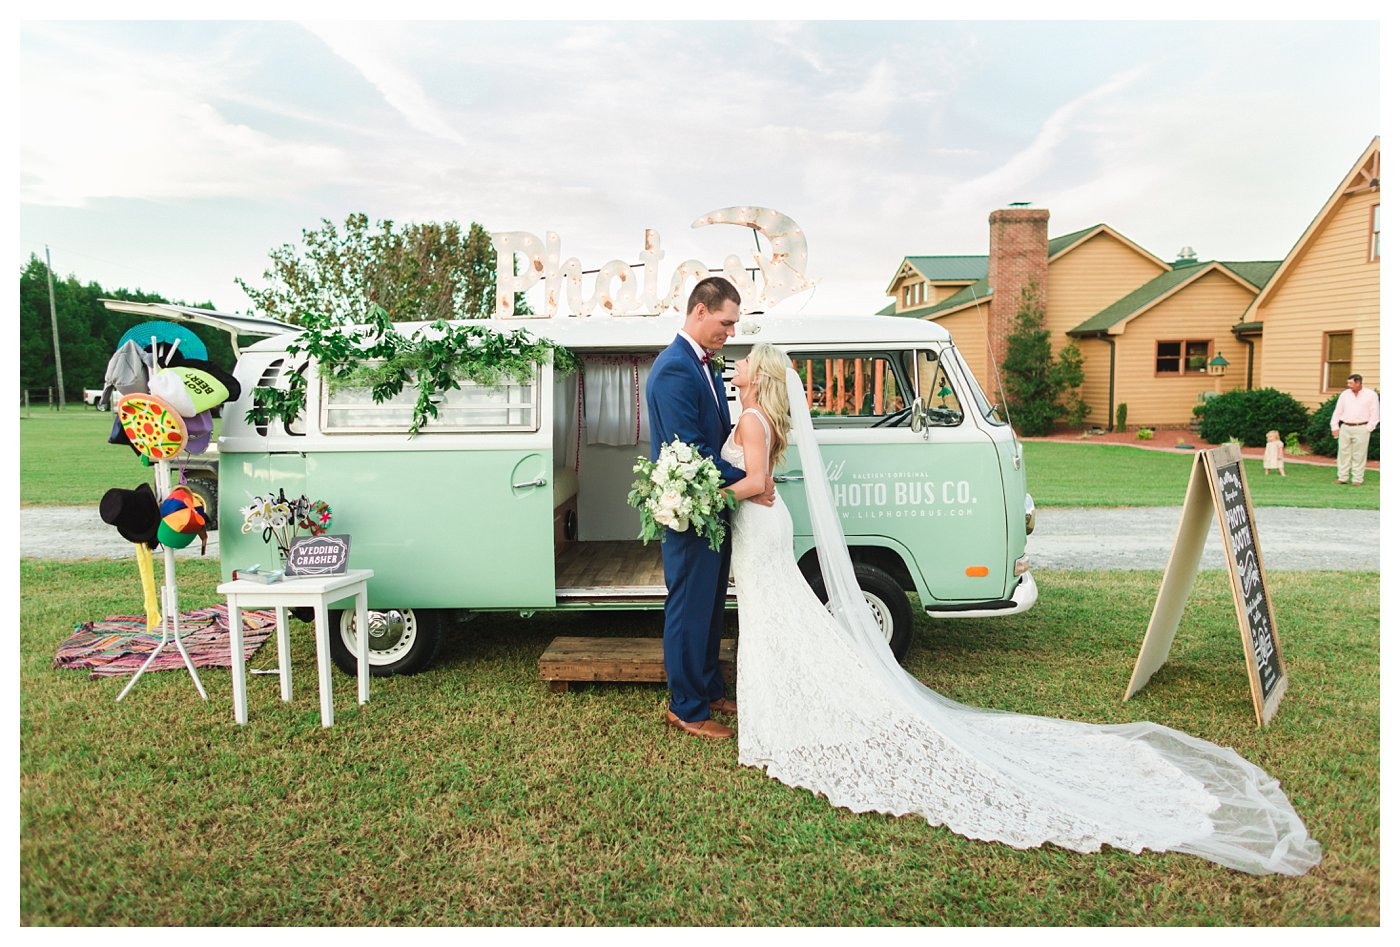 Raleigh, NC Wedding Photography by Amanda and Grady Lil Photo Bus